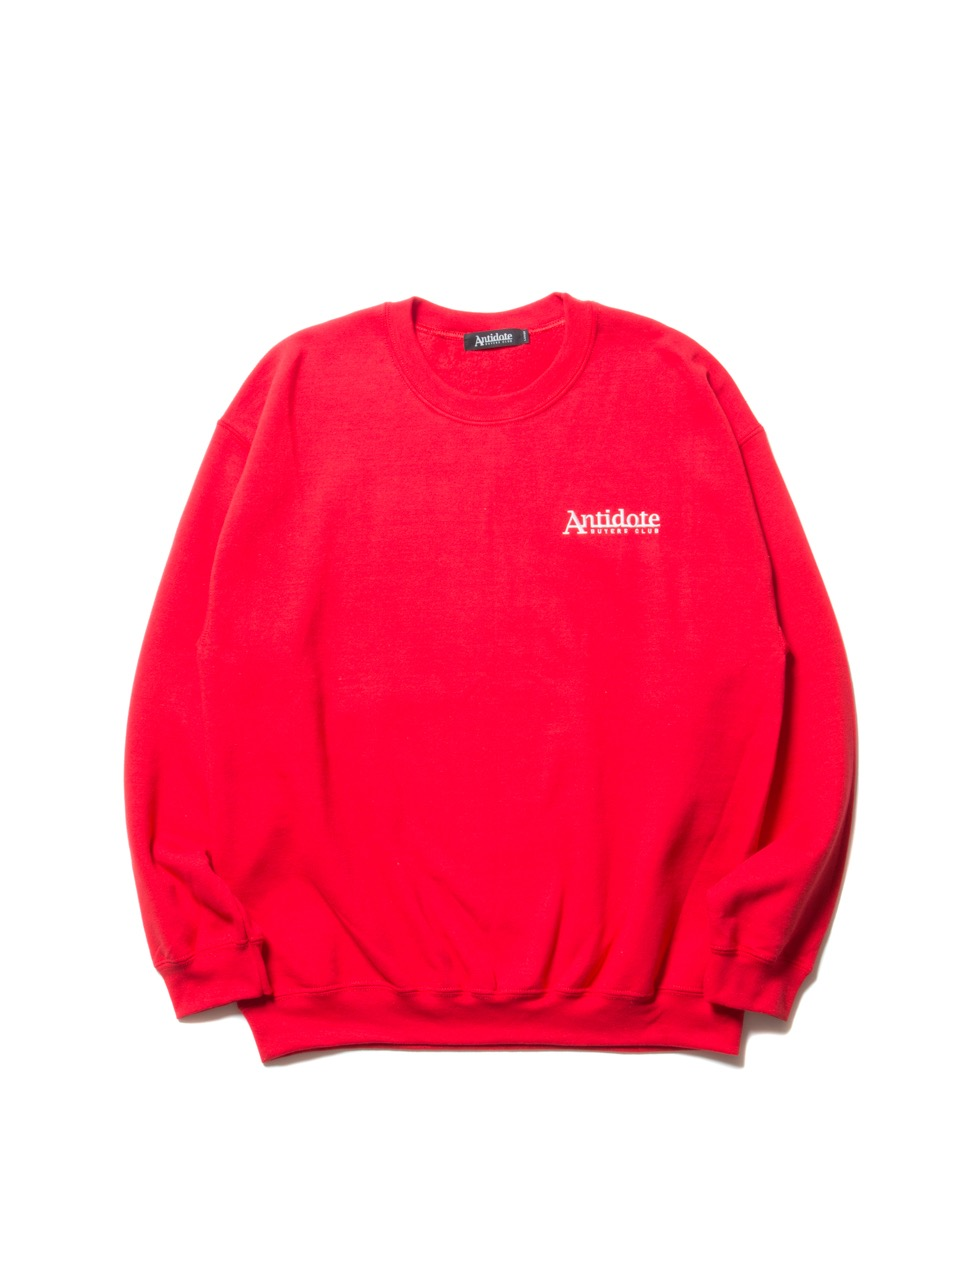 ANTIDOTE BUYERS CLUB Crewneck L/S Sweatshirt DETOXIFY